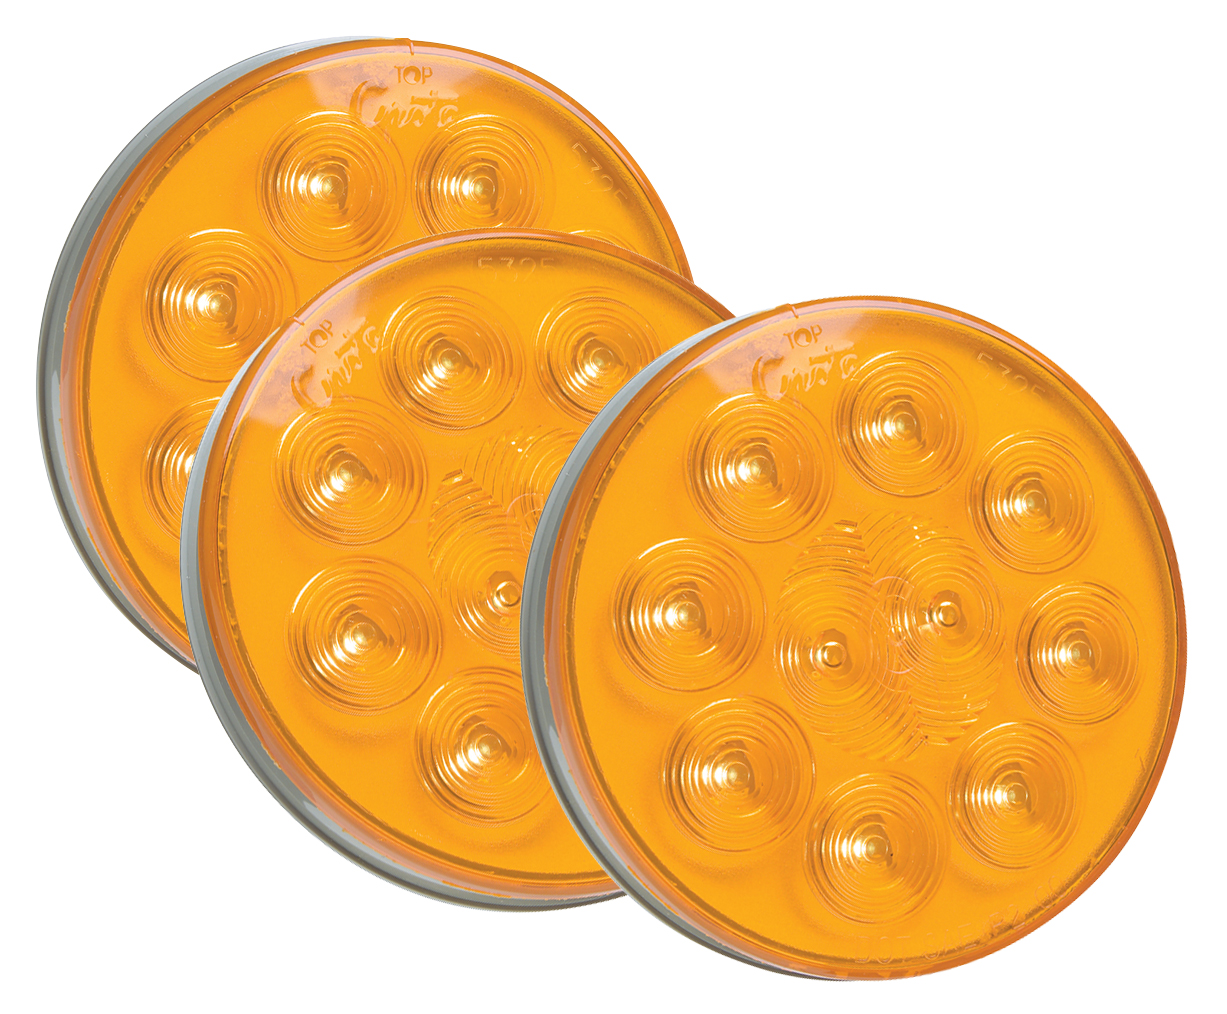 Grote Industries - 53253-3 – SuperNova® 4″ 10-Diode Pattern LED Stop Tail Turn Light, Grommet Mount, Auxiliary Turn, Yellow, Bulk Pack